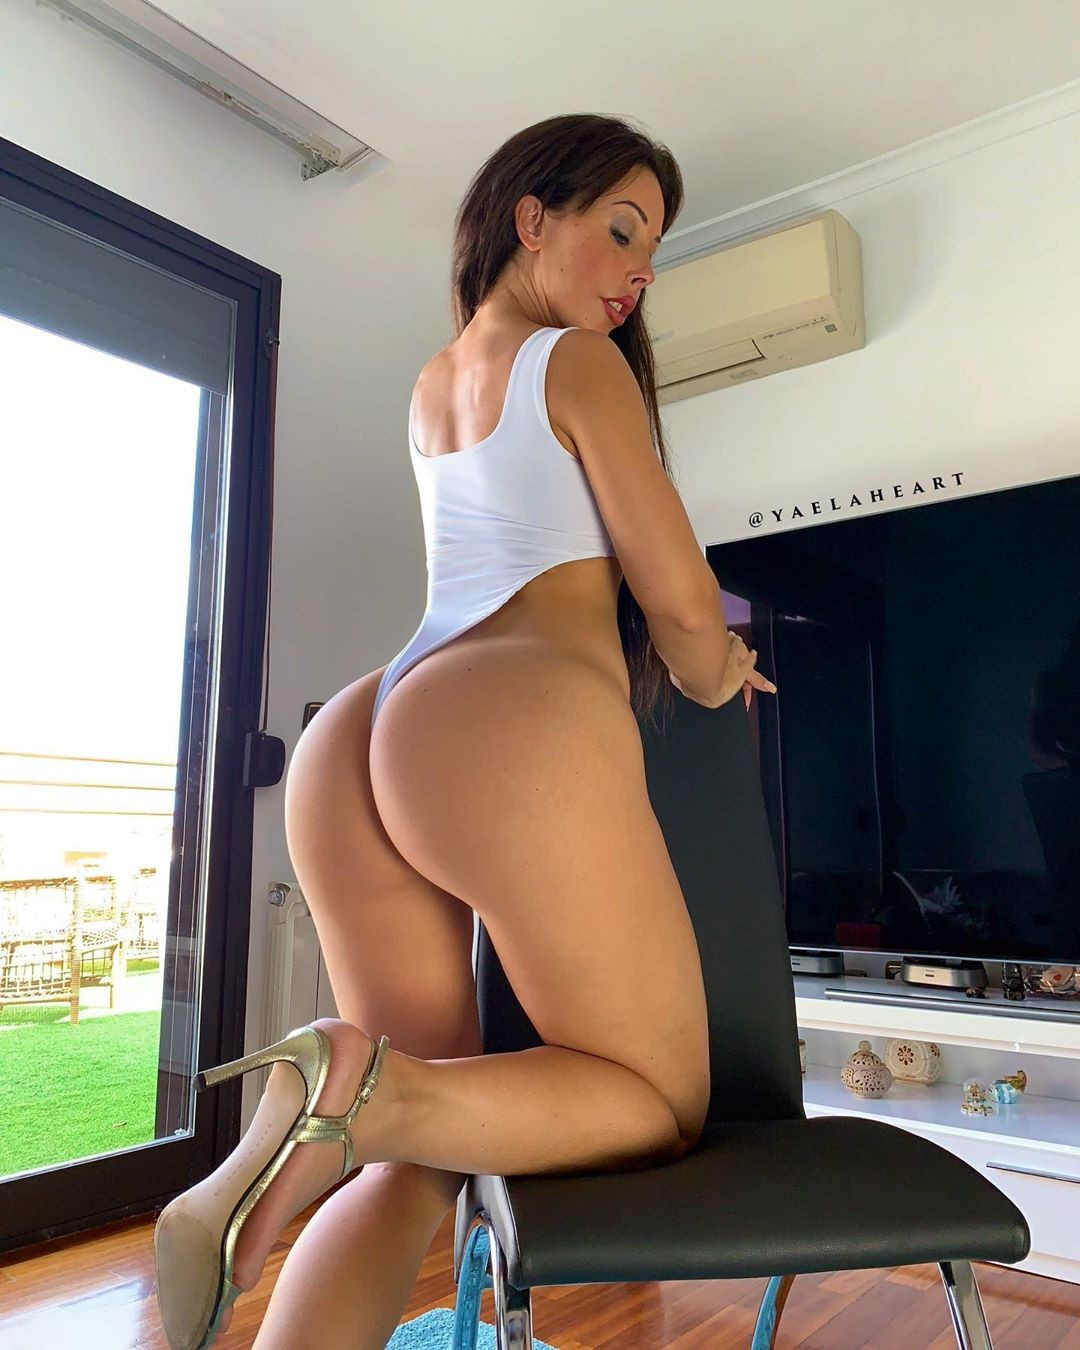 Yaela Heart Provocative Pictures, Amazing Ass